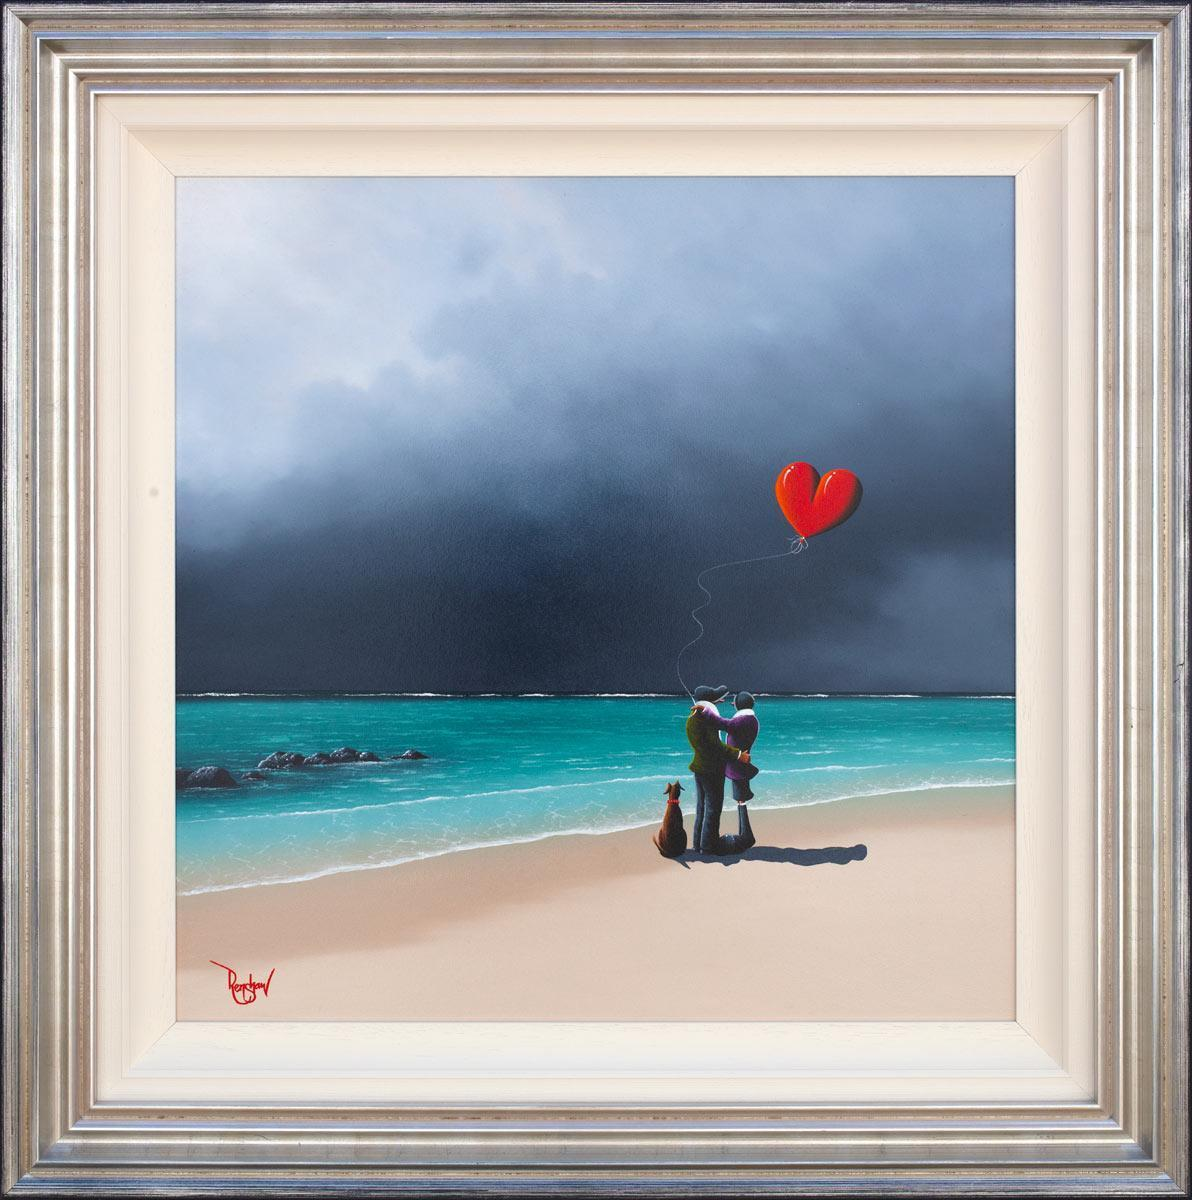 Another Time, Another Place - Original David Renshaw Framed